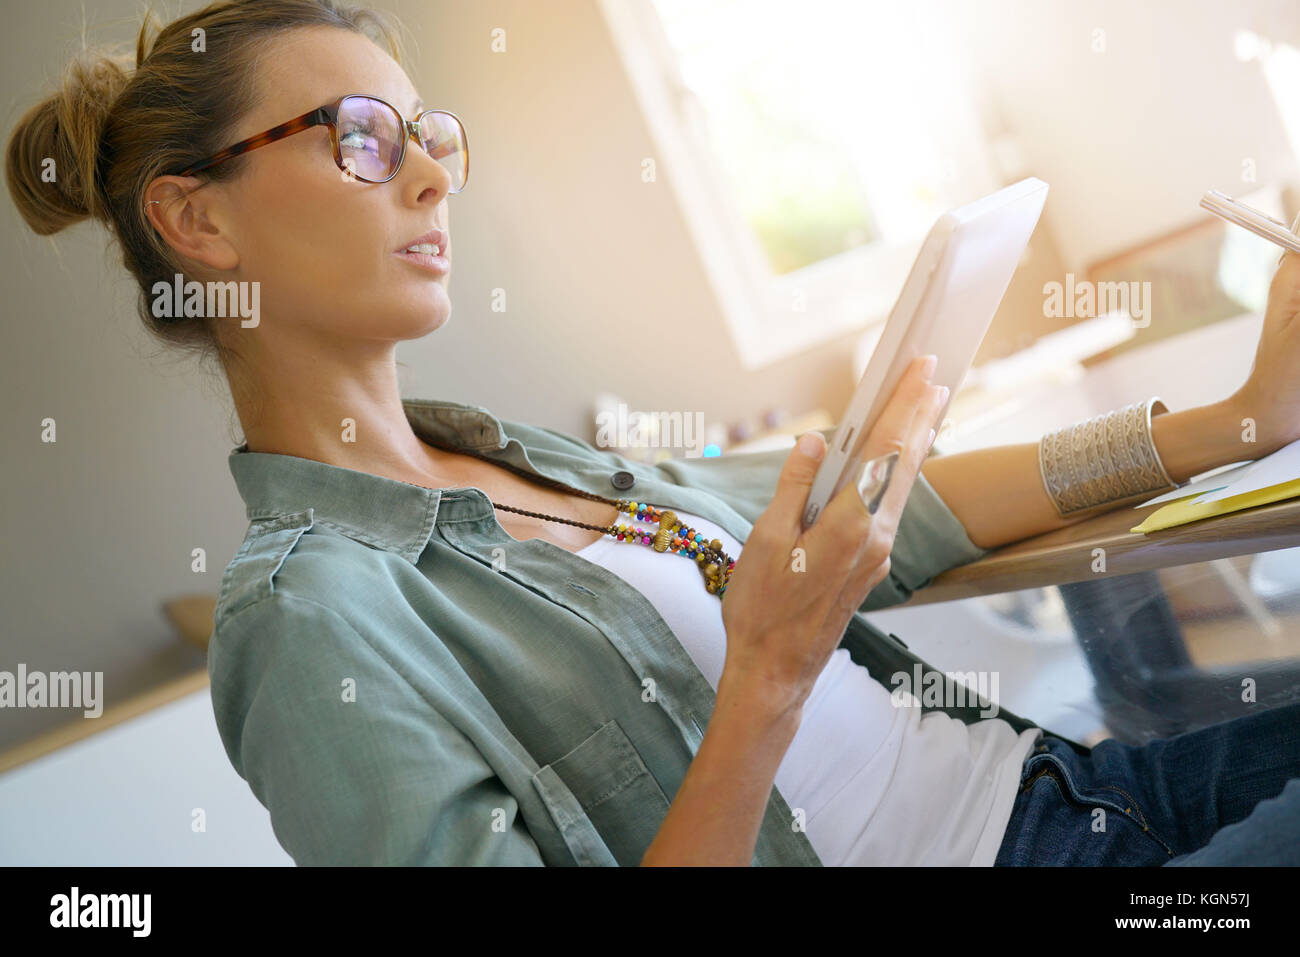 Trendy girl with eyeglasses connected on digital tablet - Stock Image